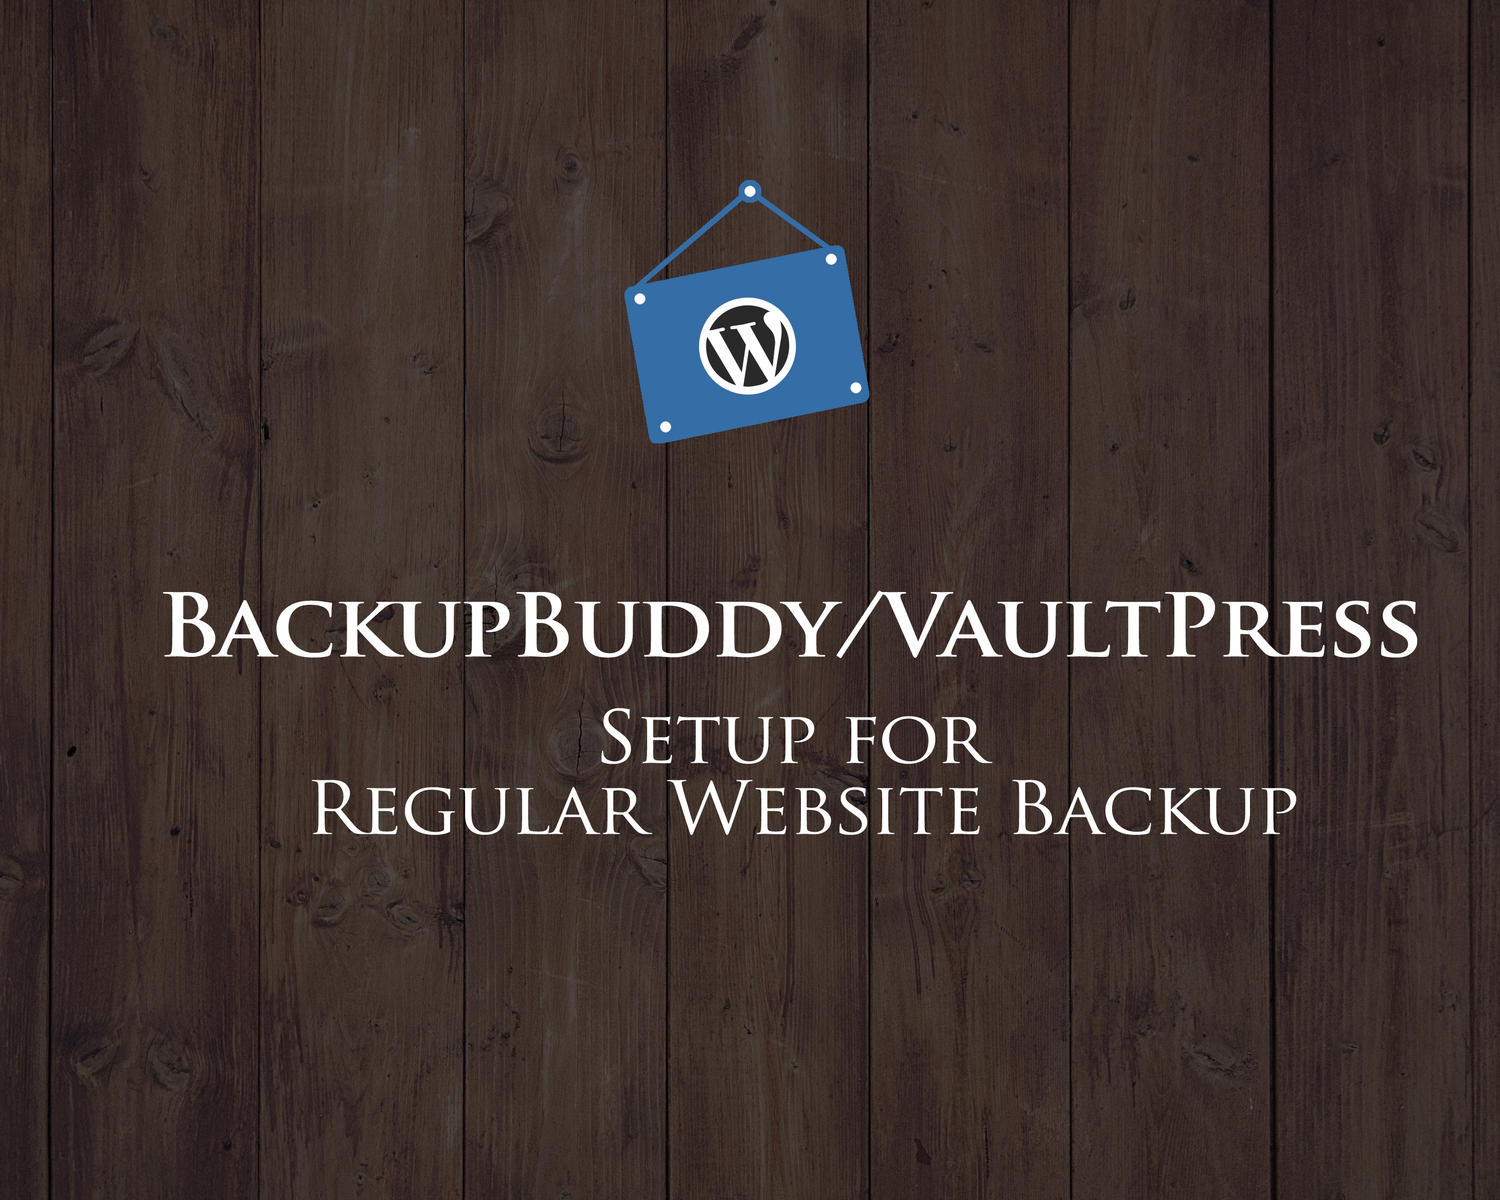 BackupBuddy/VaultPress Setup for Regular Website Backup by hasanet - 98064